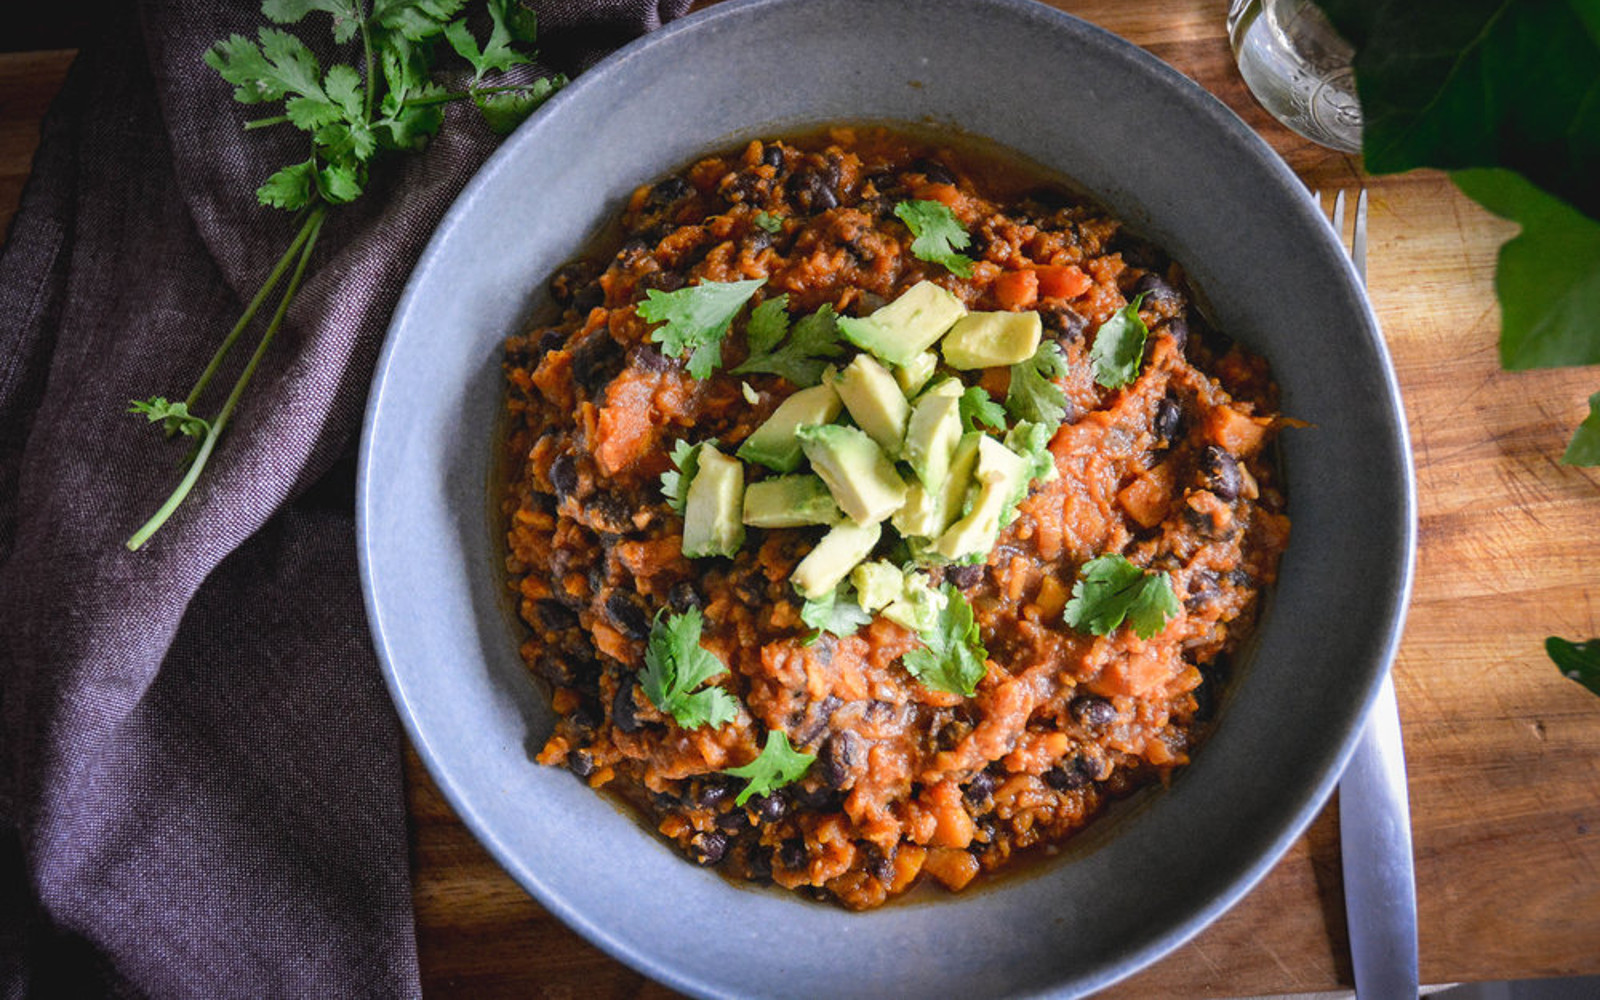 Vegan Gluten-Free Sweet Potato Chili topped with herbs and avocado